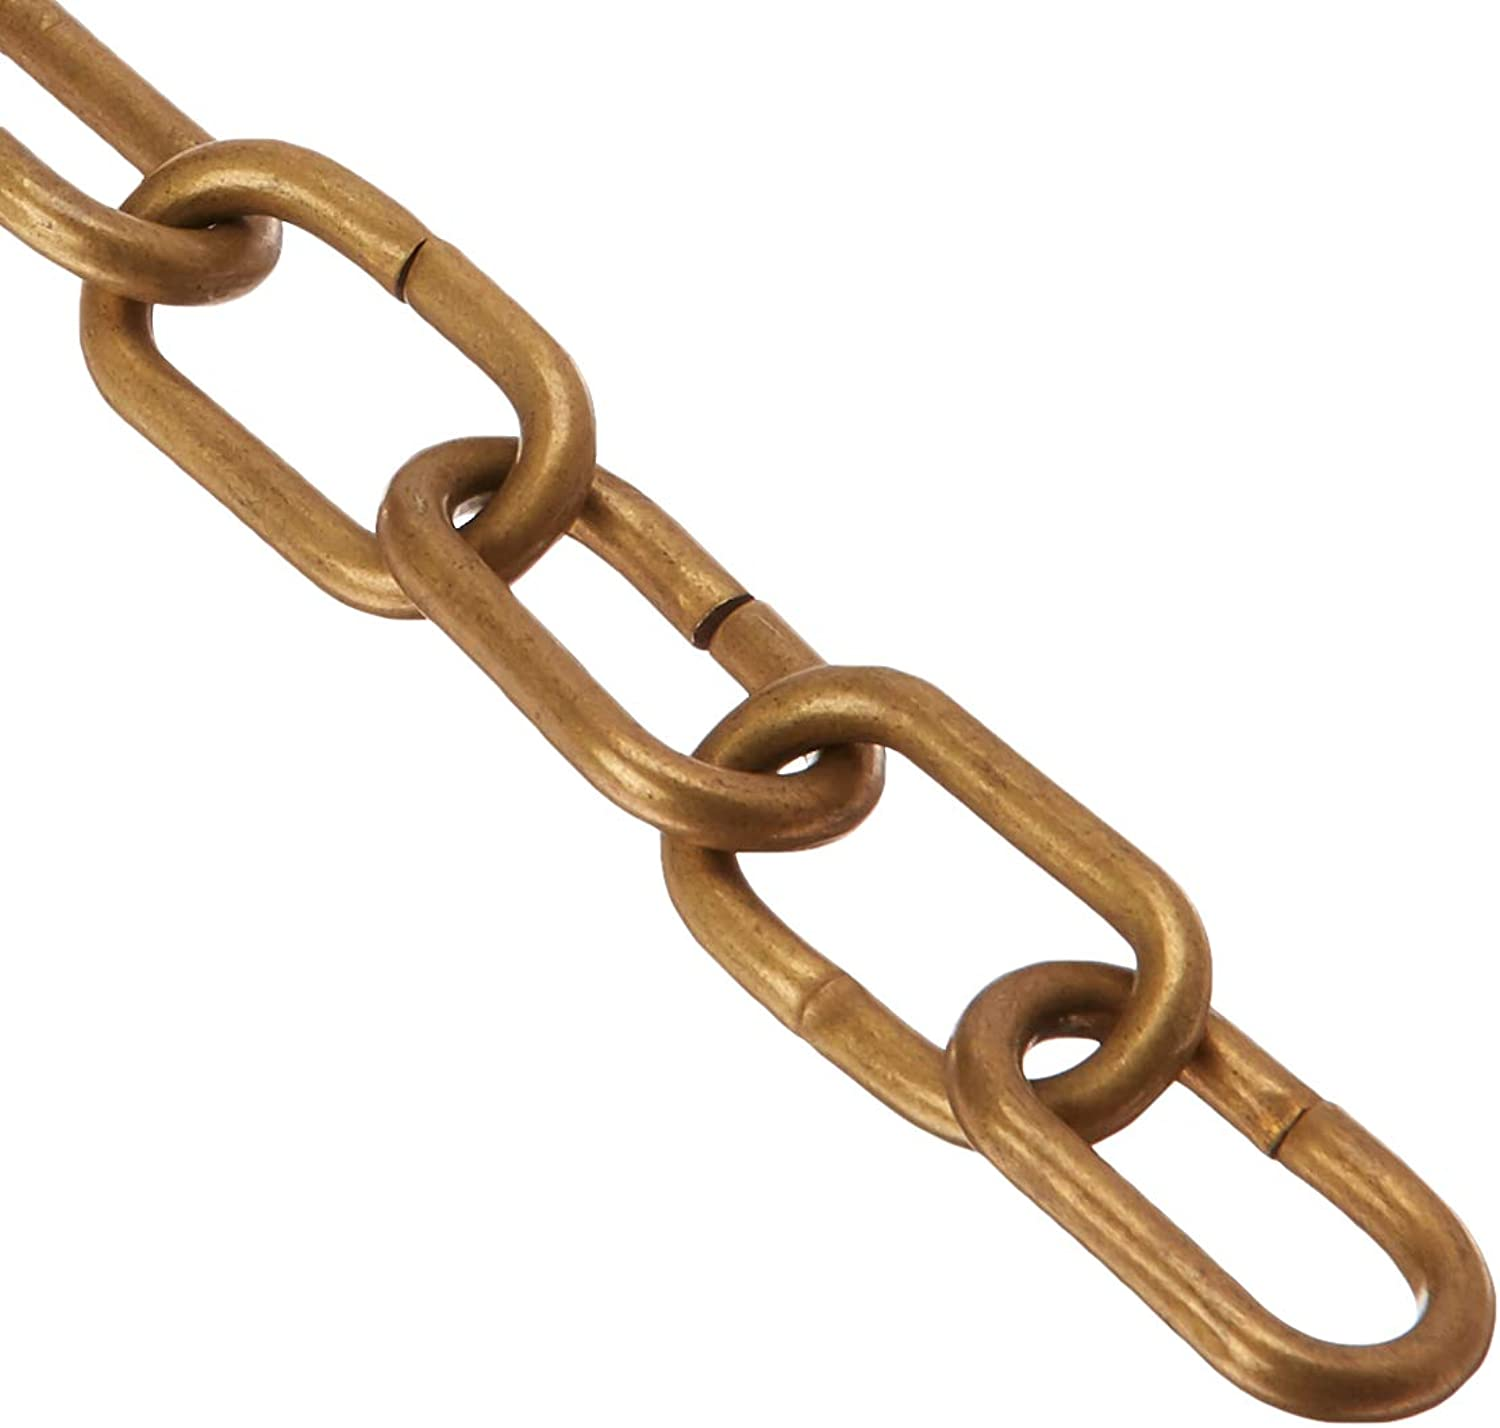 RCH Hardware CH-07-AB-3 Decorative Polished Solid Chain for Hanging, Lighting-Standard Unwelded Links (3 ft 1 Yard) (Antique Brass)